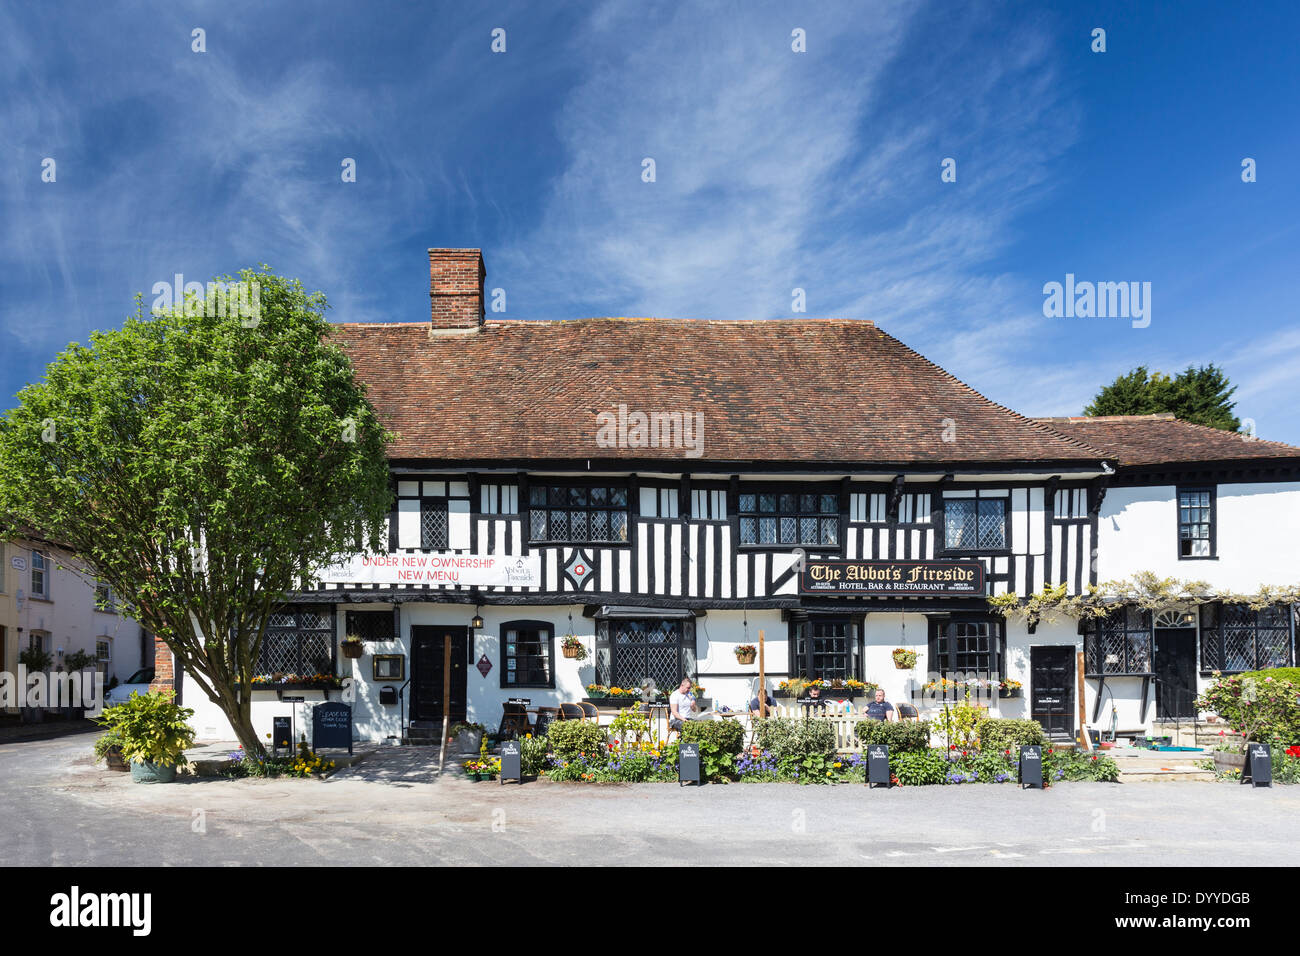 The Abbots Fireside Hotel in the Pretty Village of Elham Kent - Stock Image